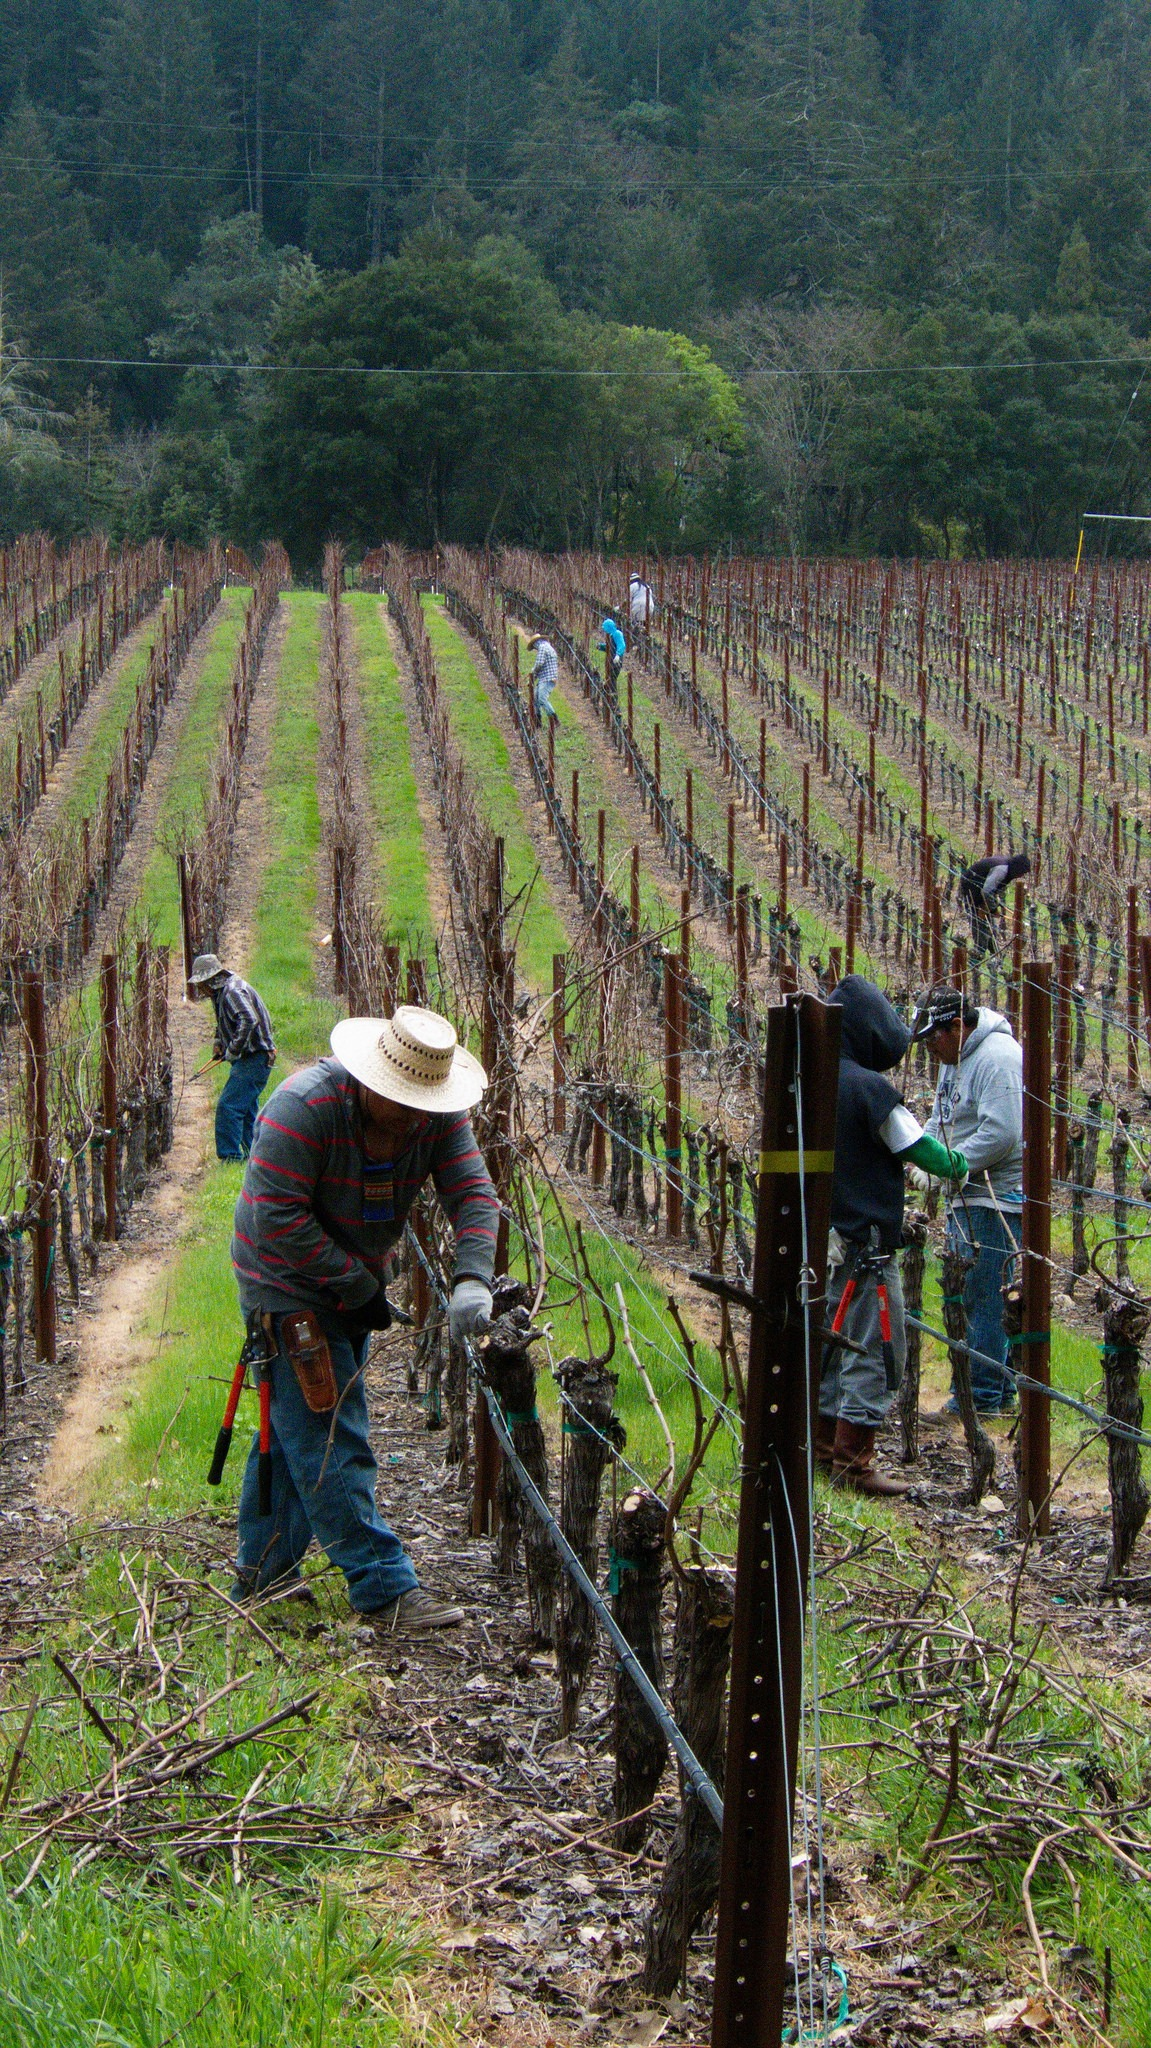 Workers Tend to Vineyard